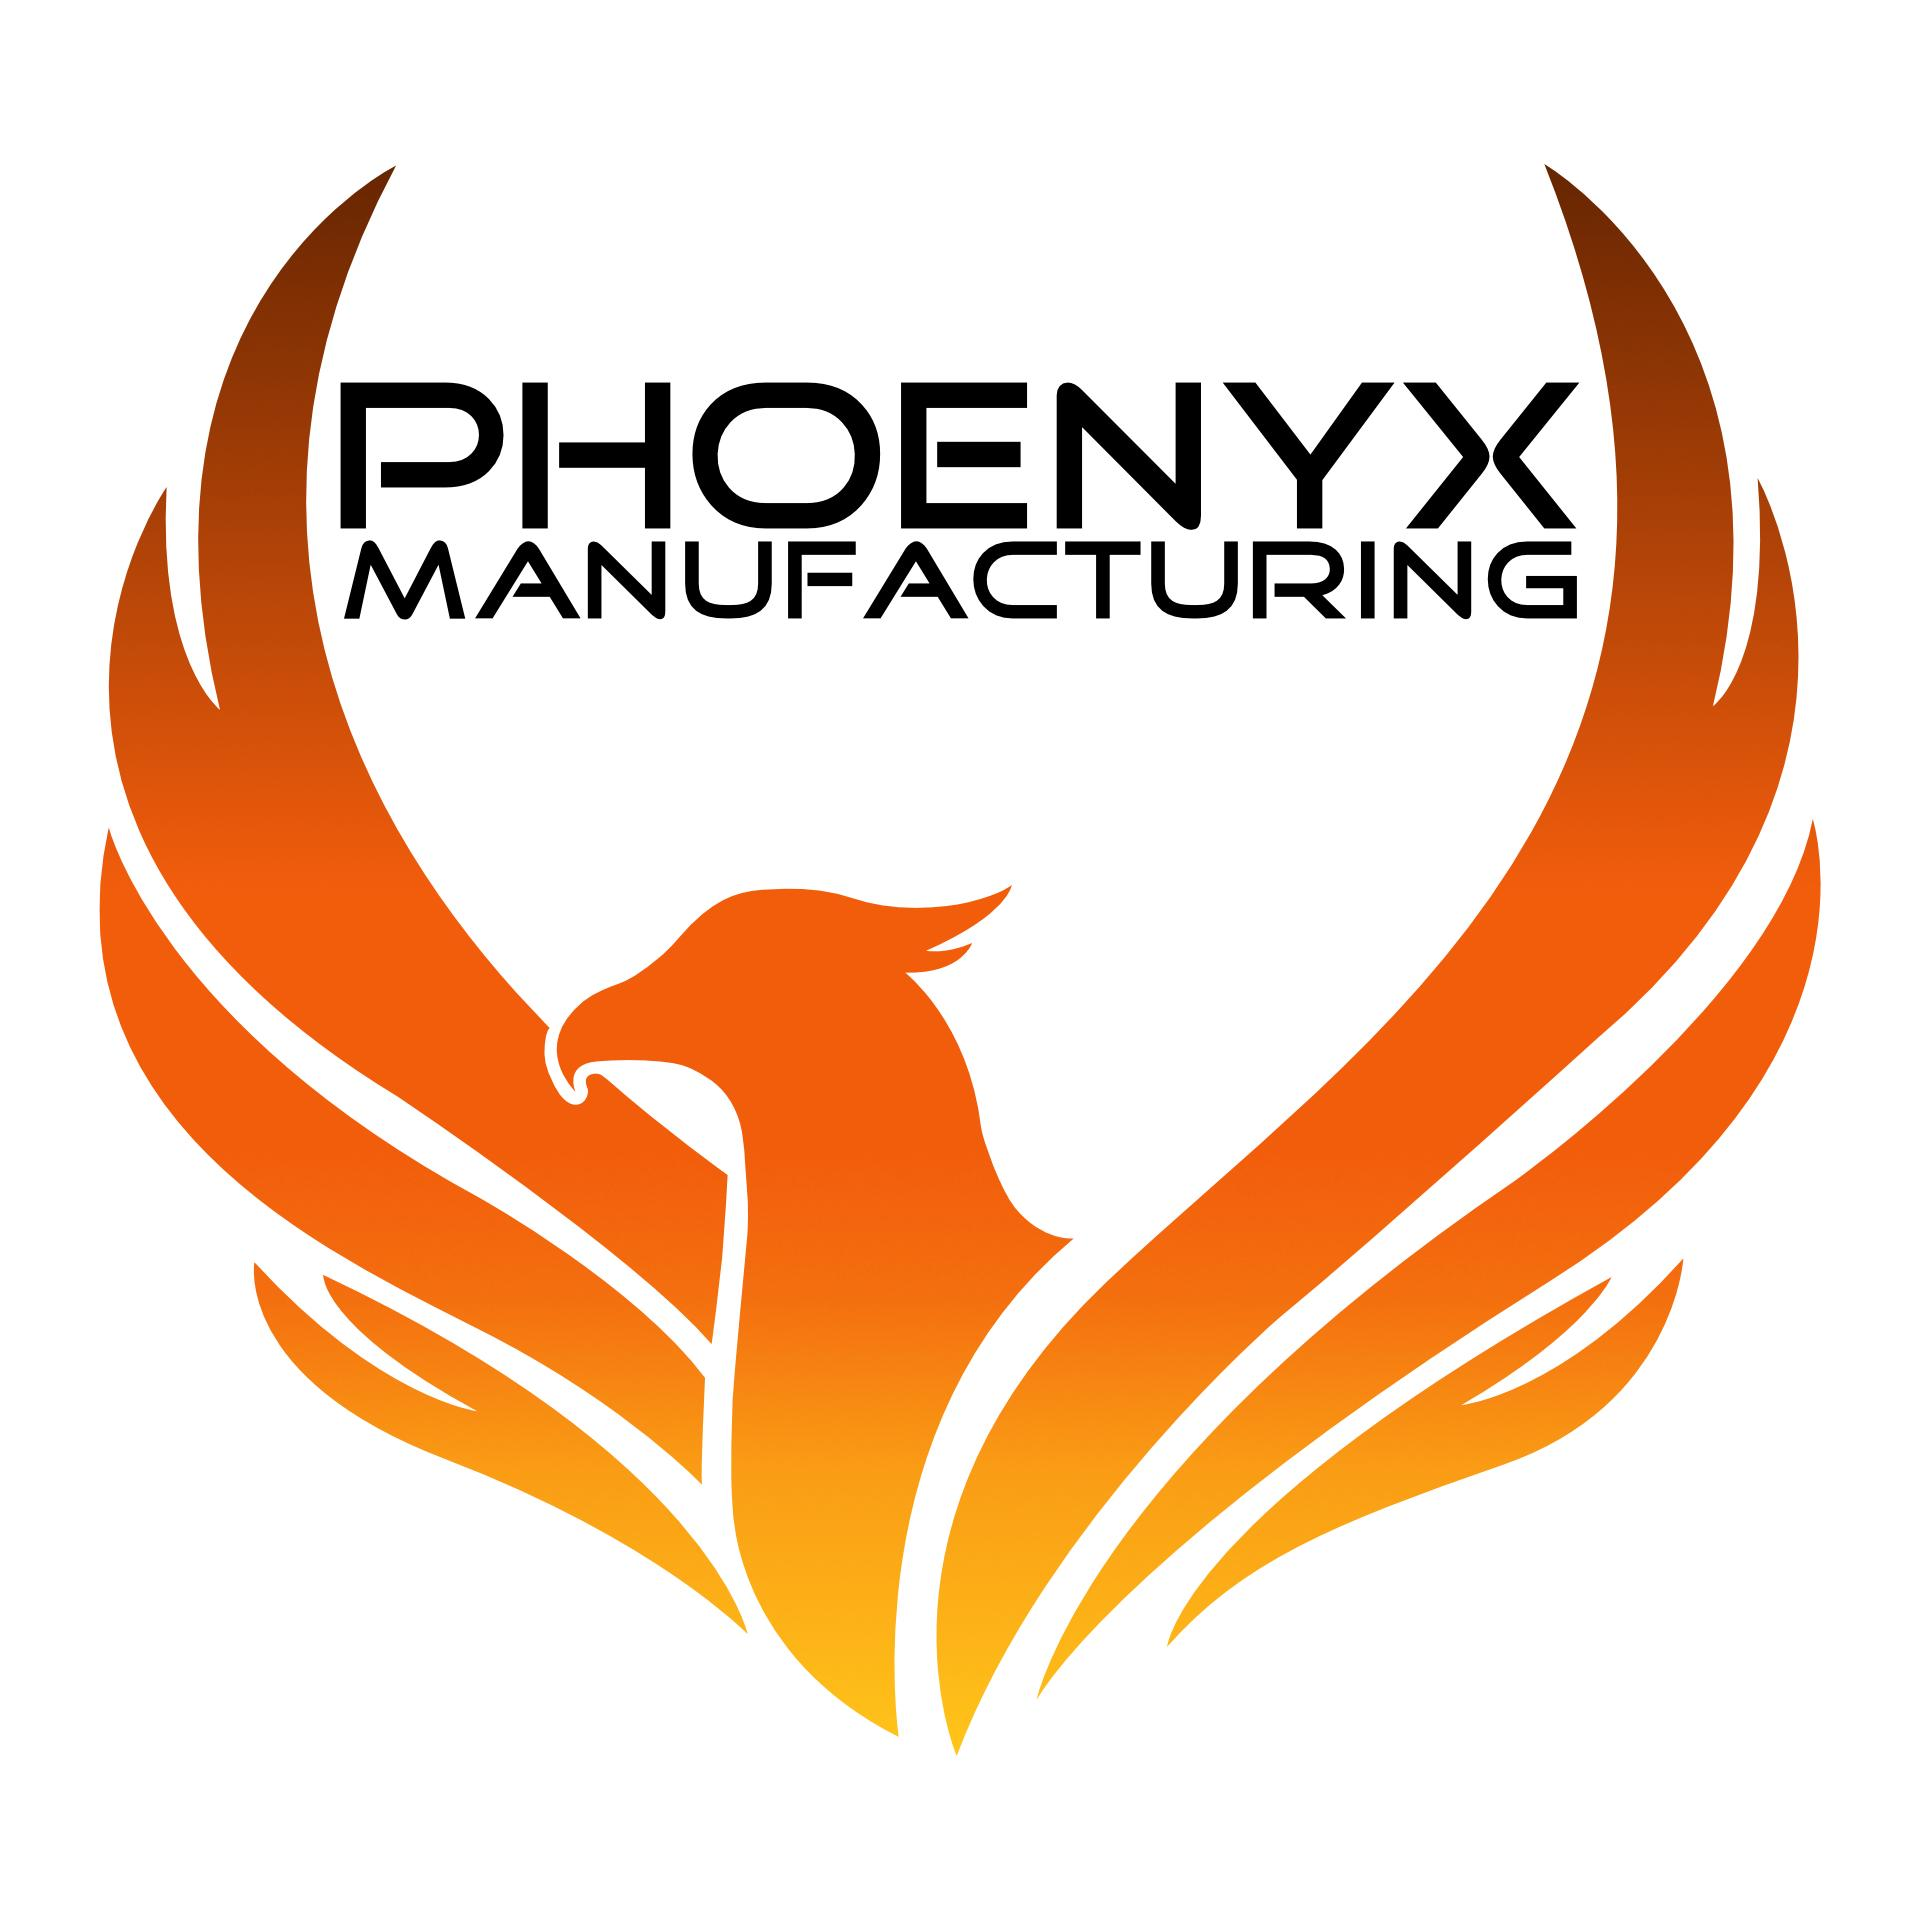 Phoenyx Manufacturing